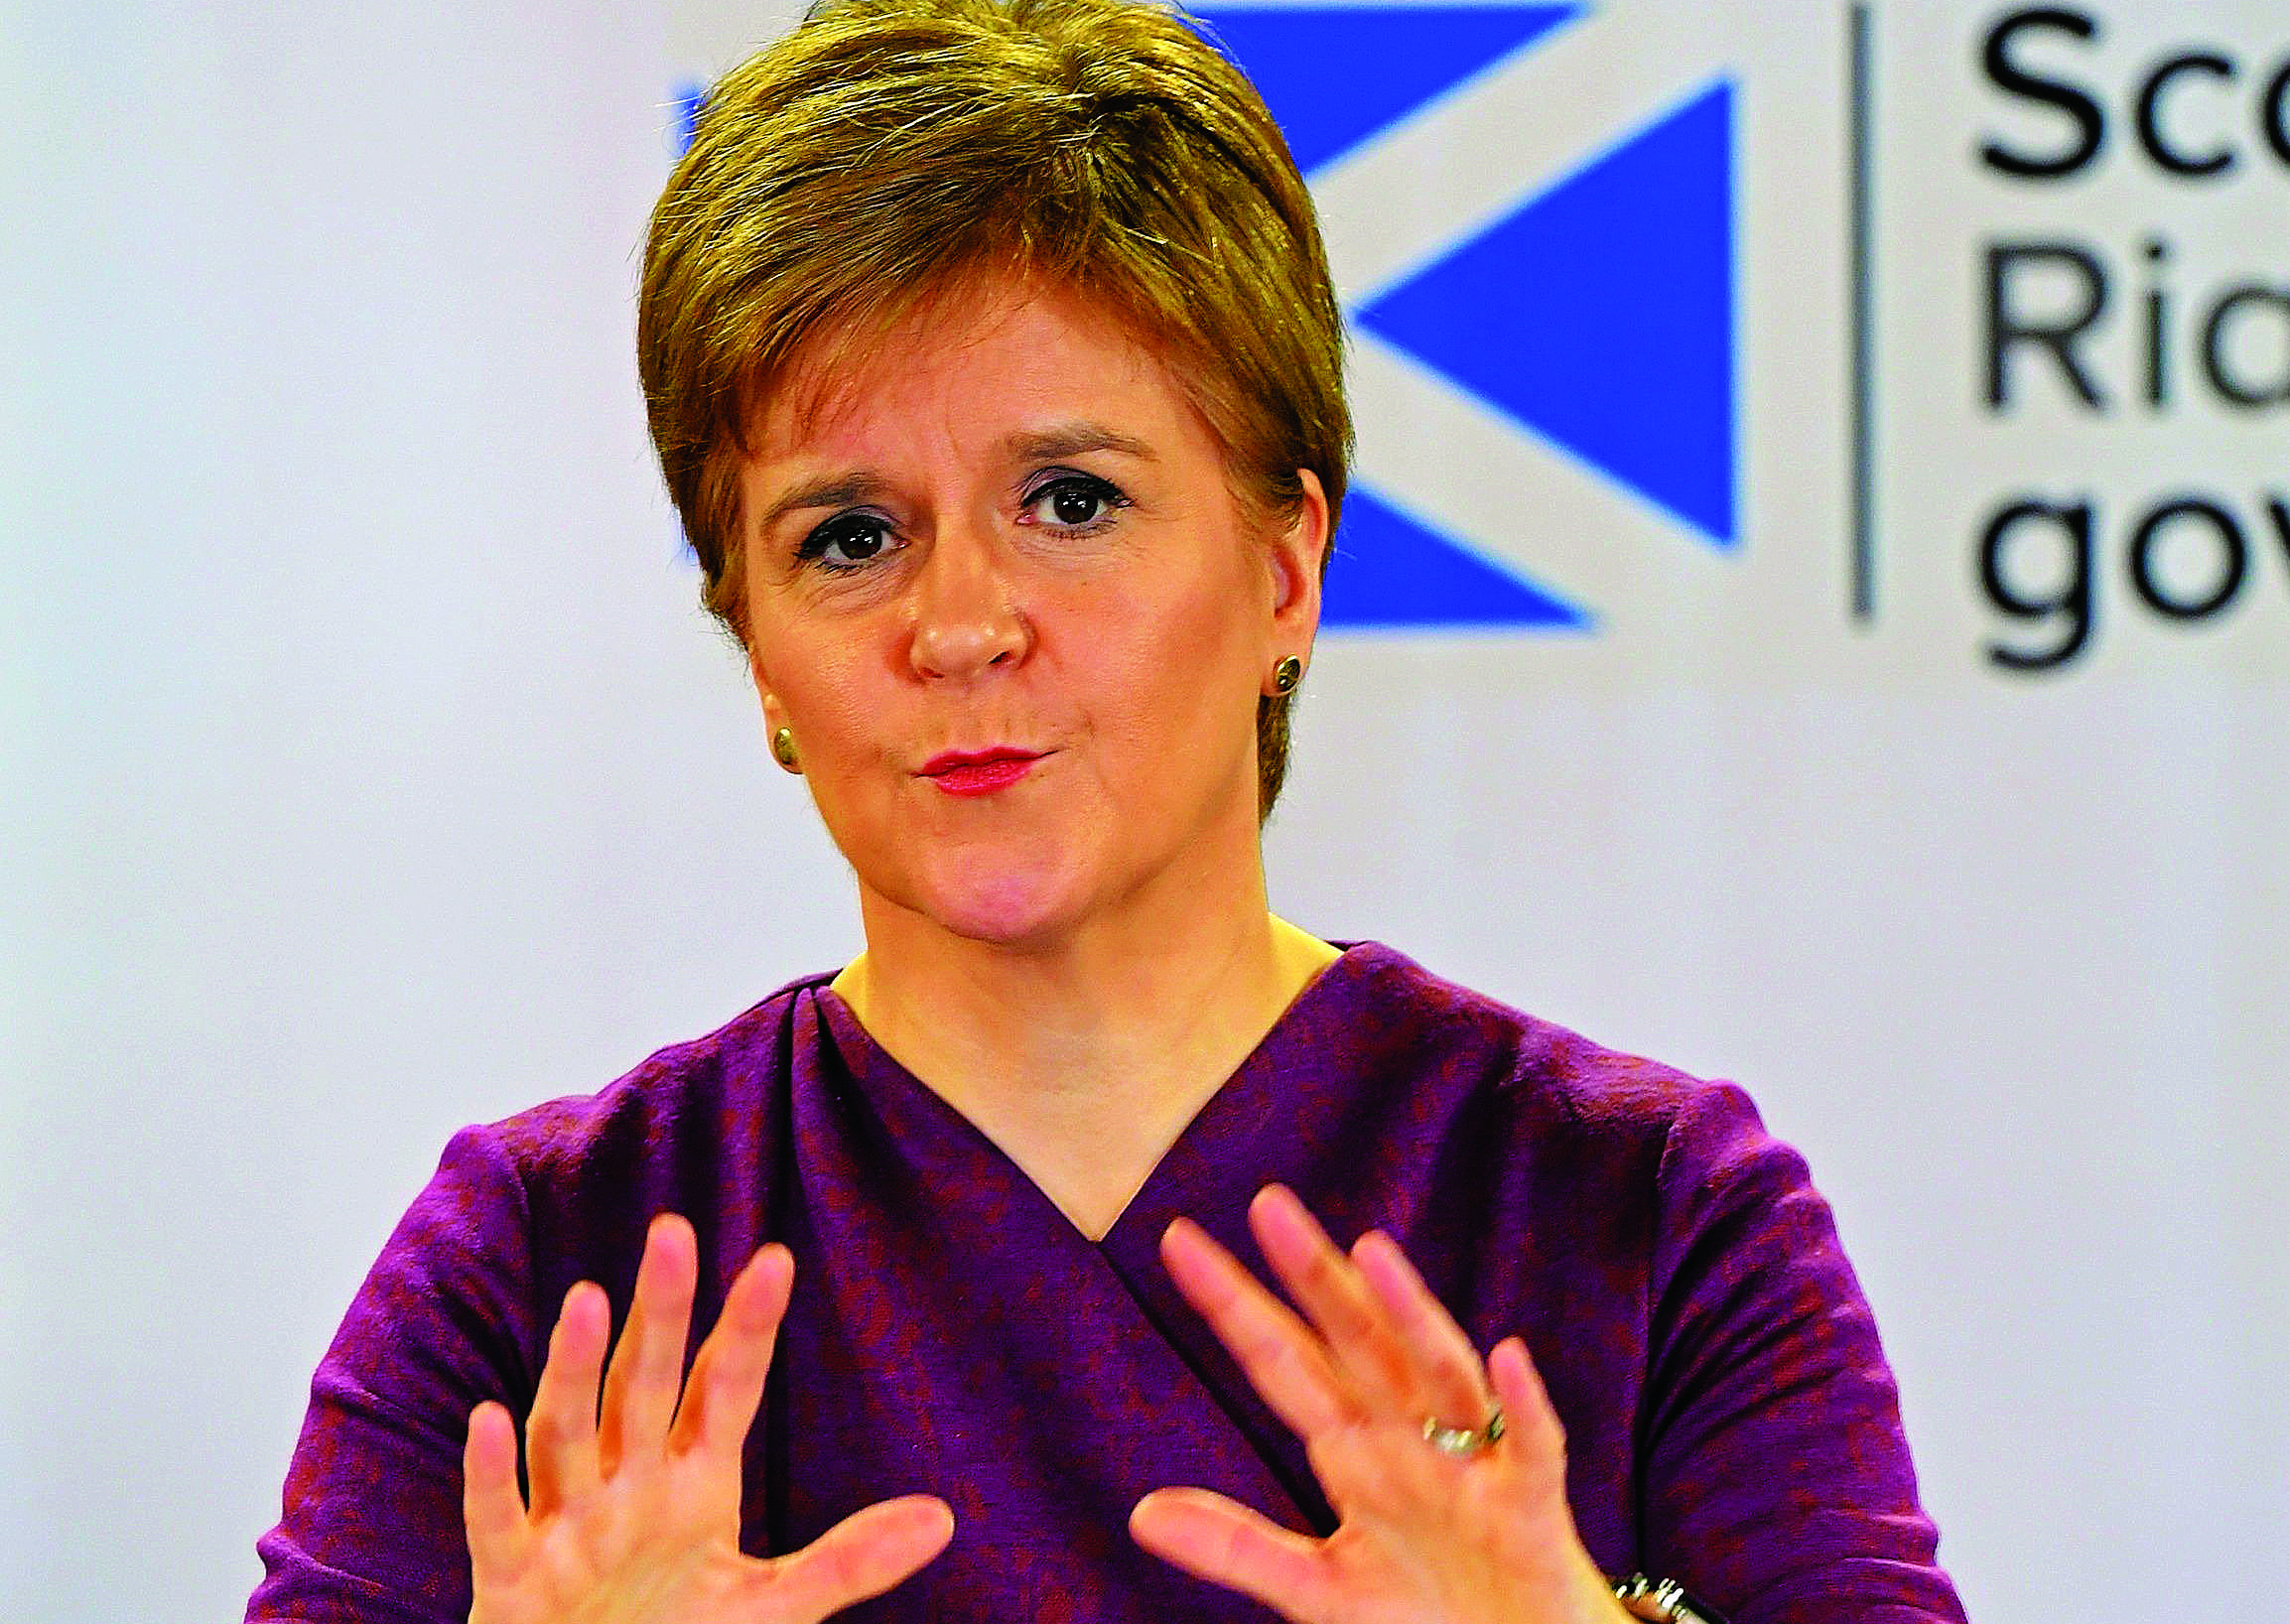 Euan McColm: Opponents will prove Nicola Sturgeon's best friends in this crisis